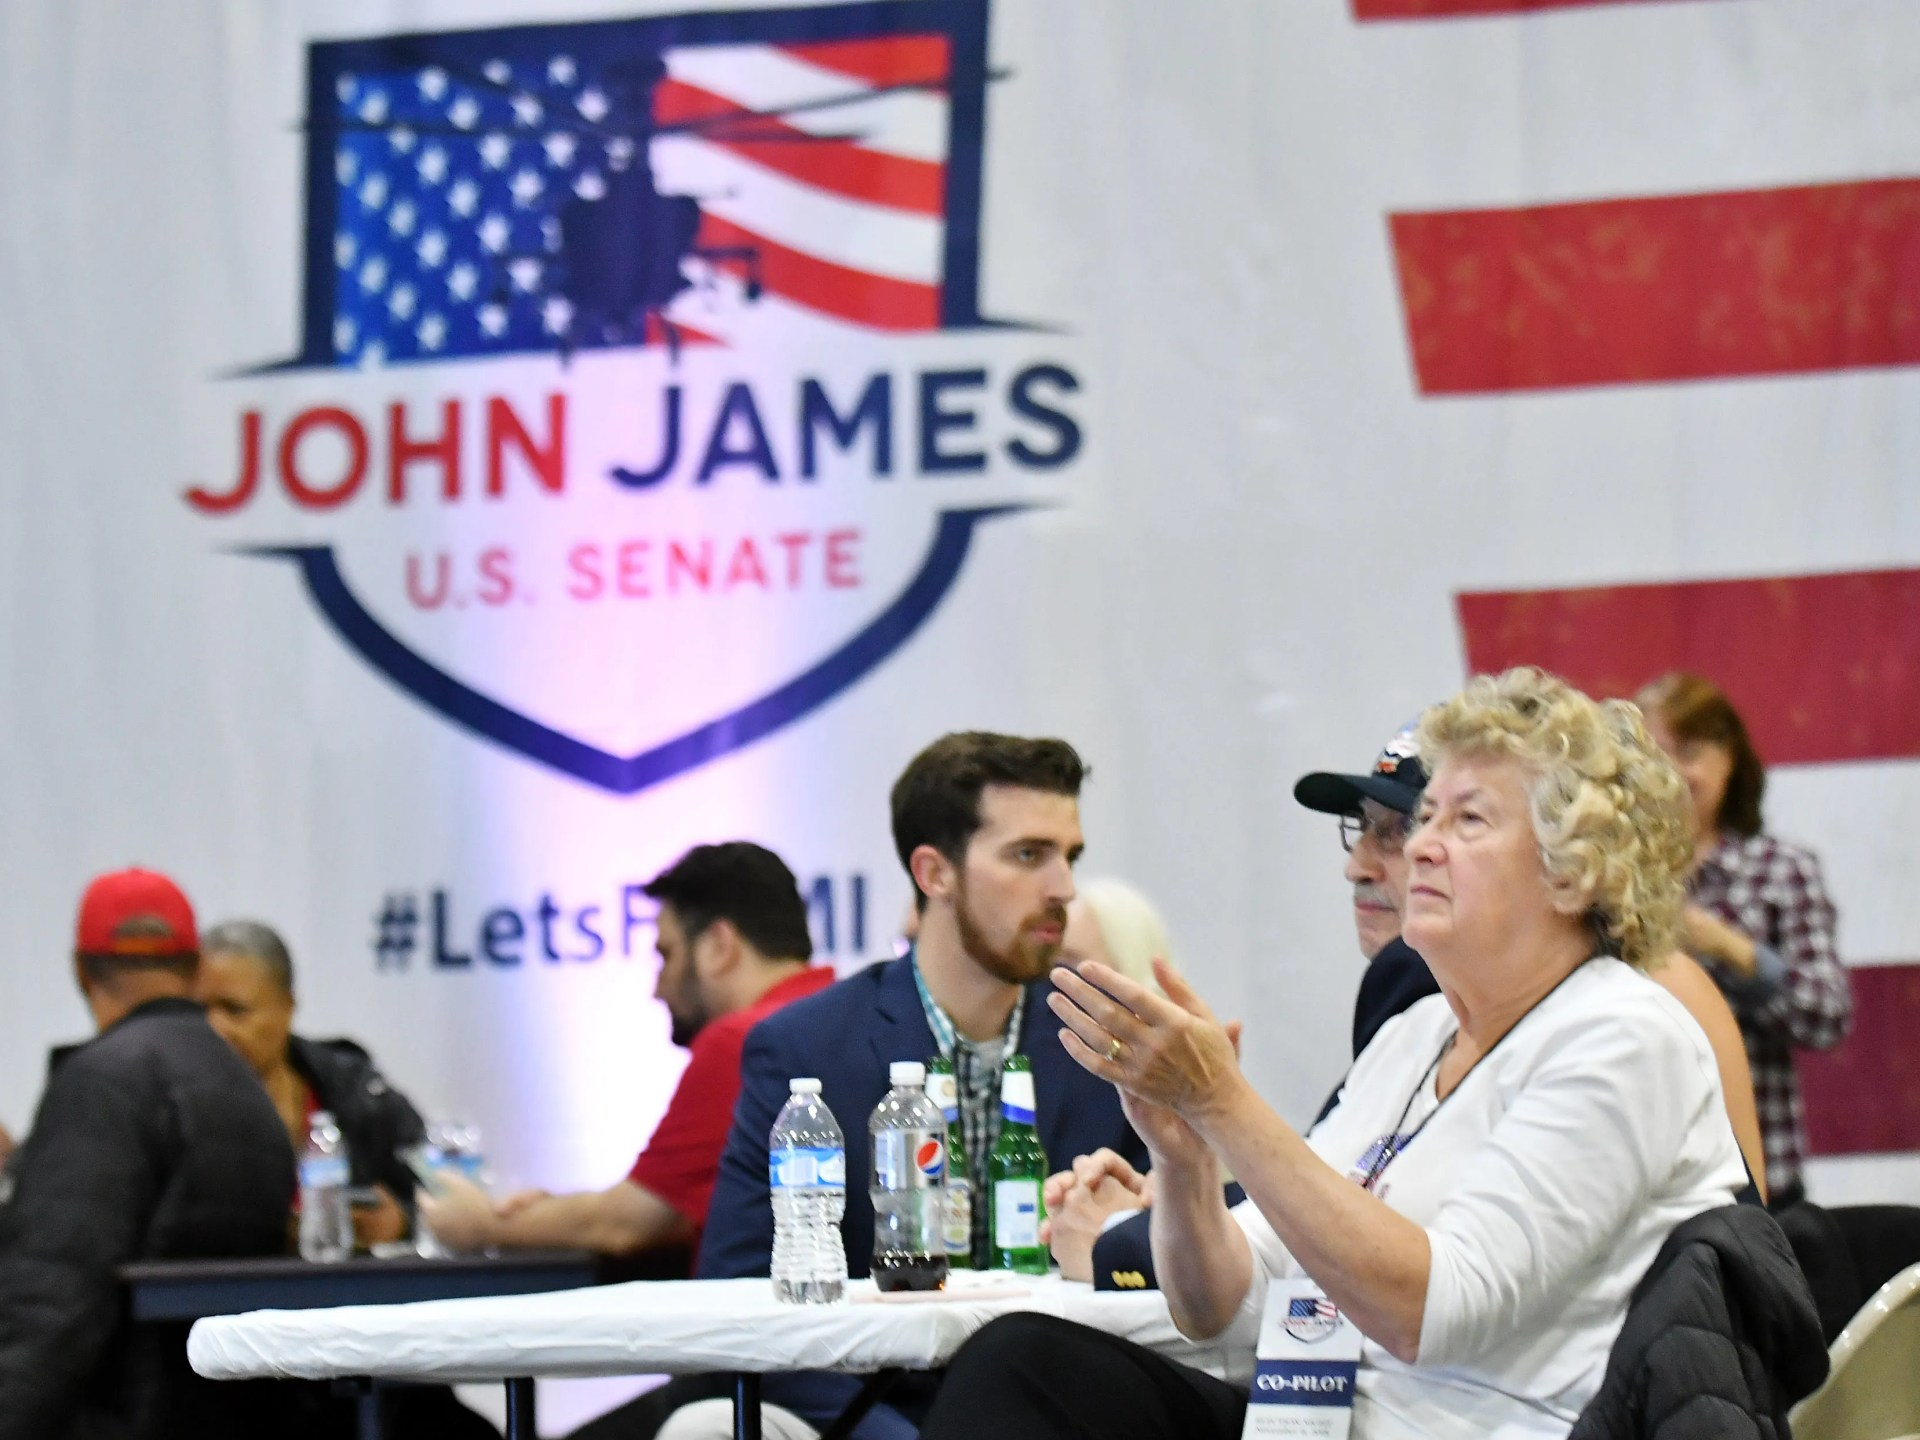 Nancy Corsett of Lexington applauds as early results are shown on television at the election night party for U.S. Senate Republican candidate John James at James Group International in Detroit Tuesday night.